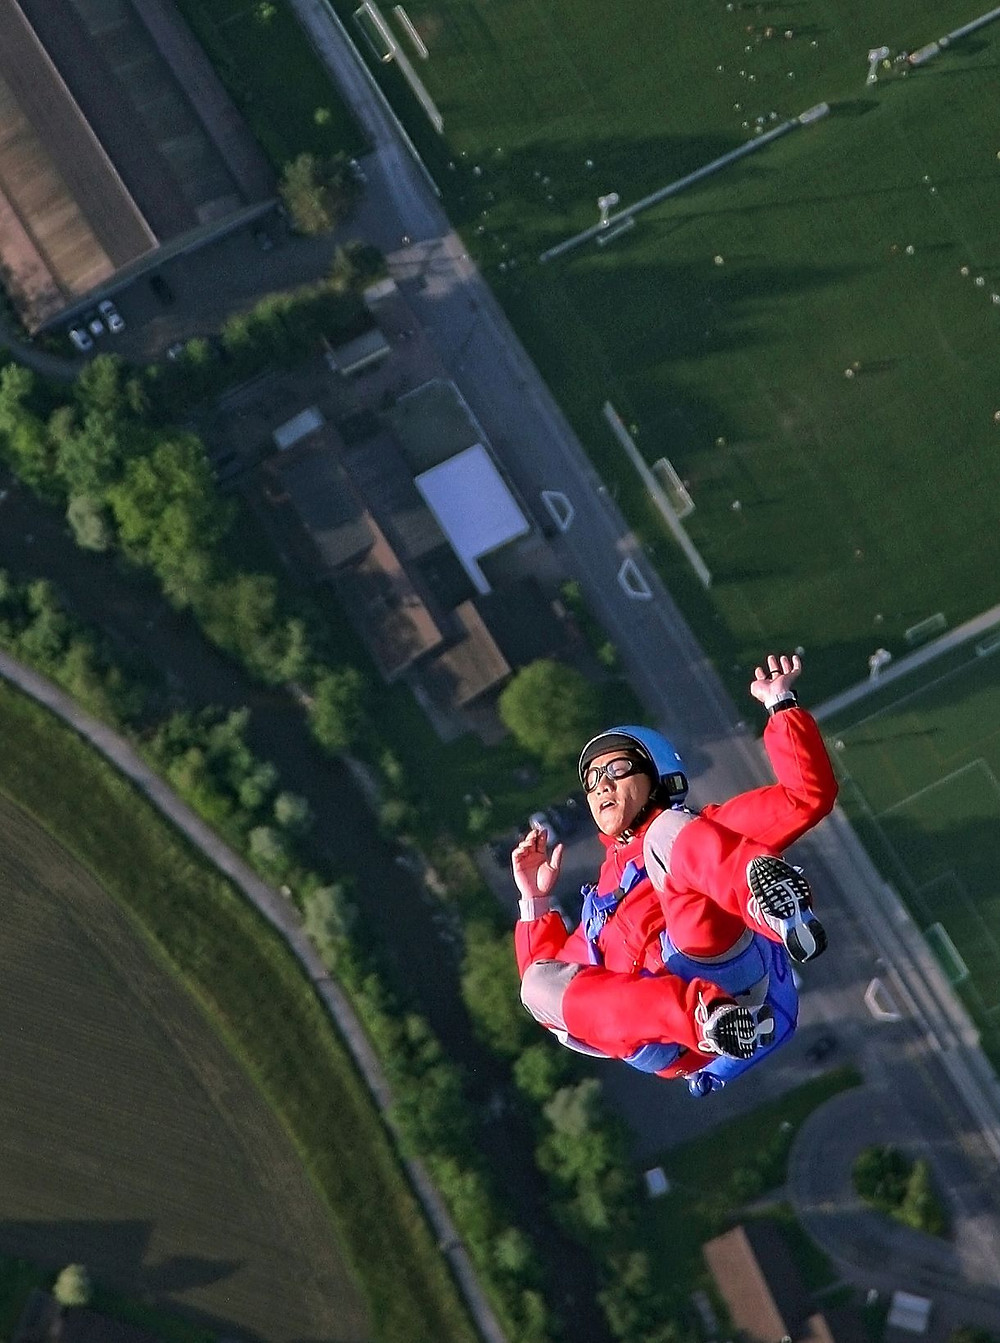 person in free fall